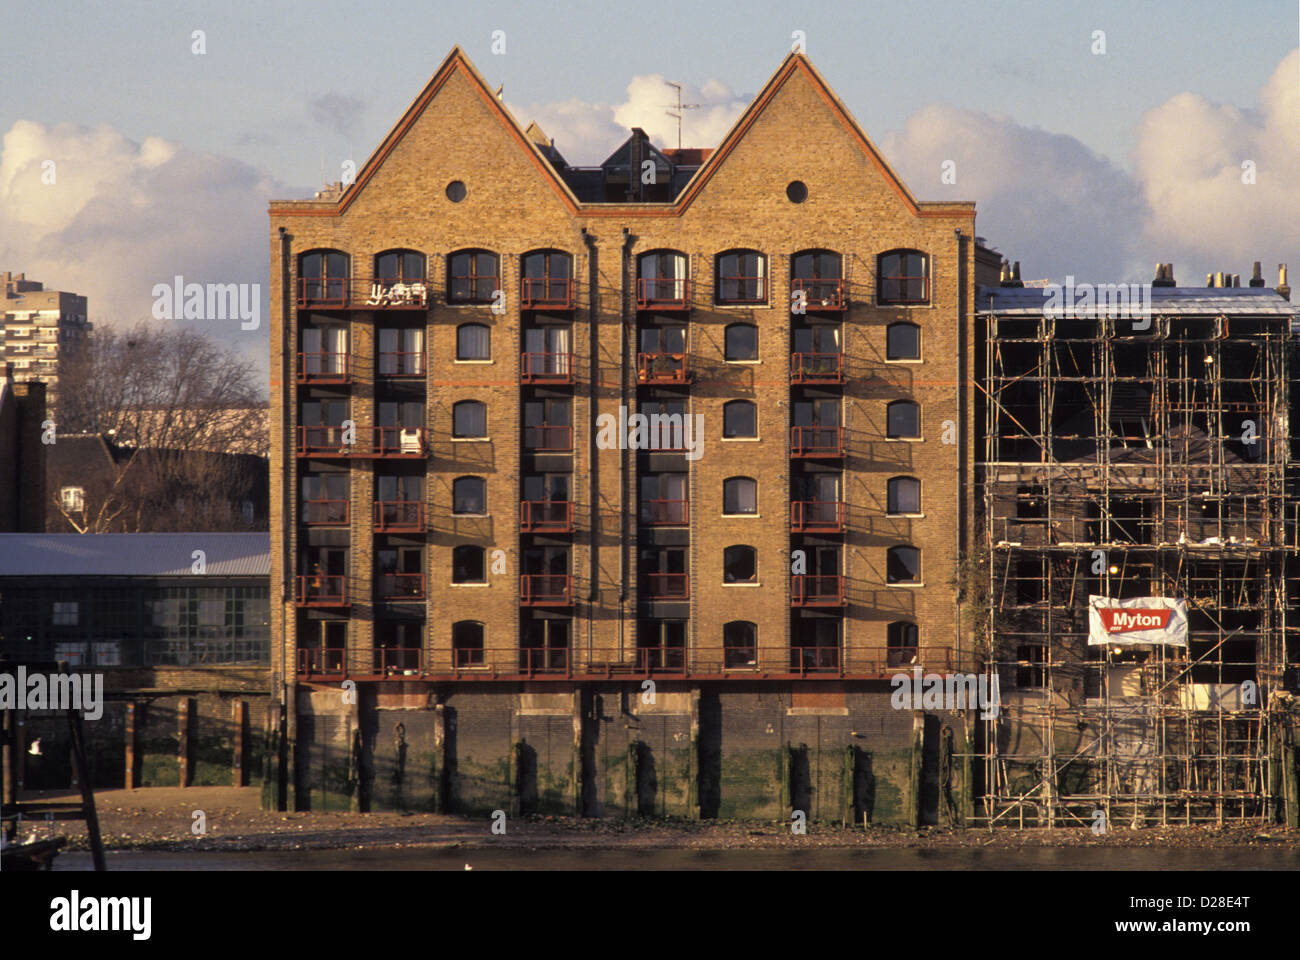 New build flats in Wapping during the 1980s Docklands boom. 1989. - Stock Image